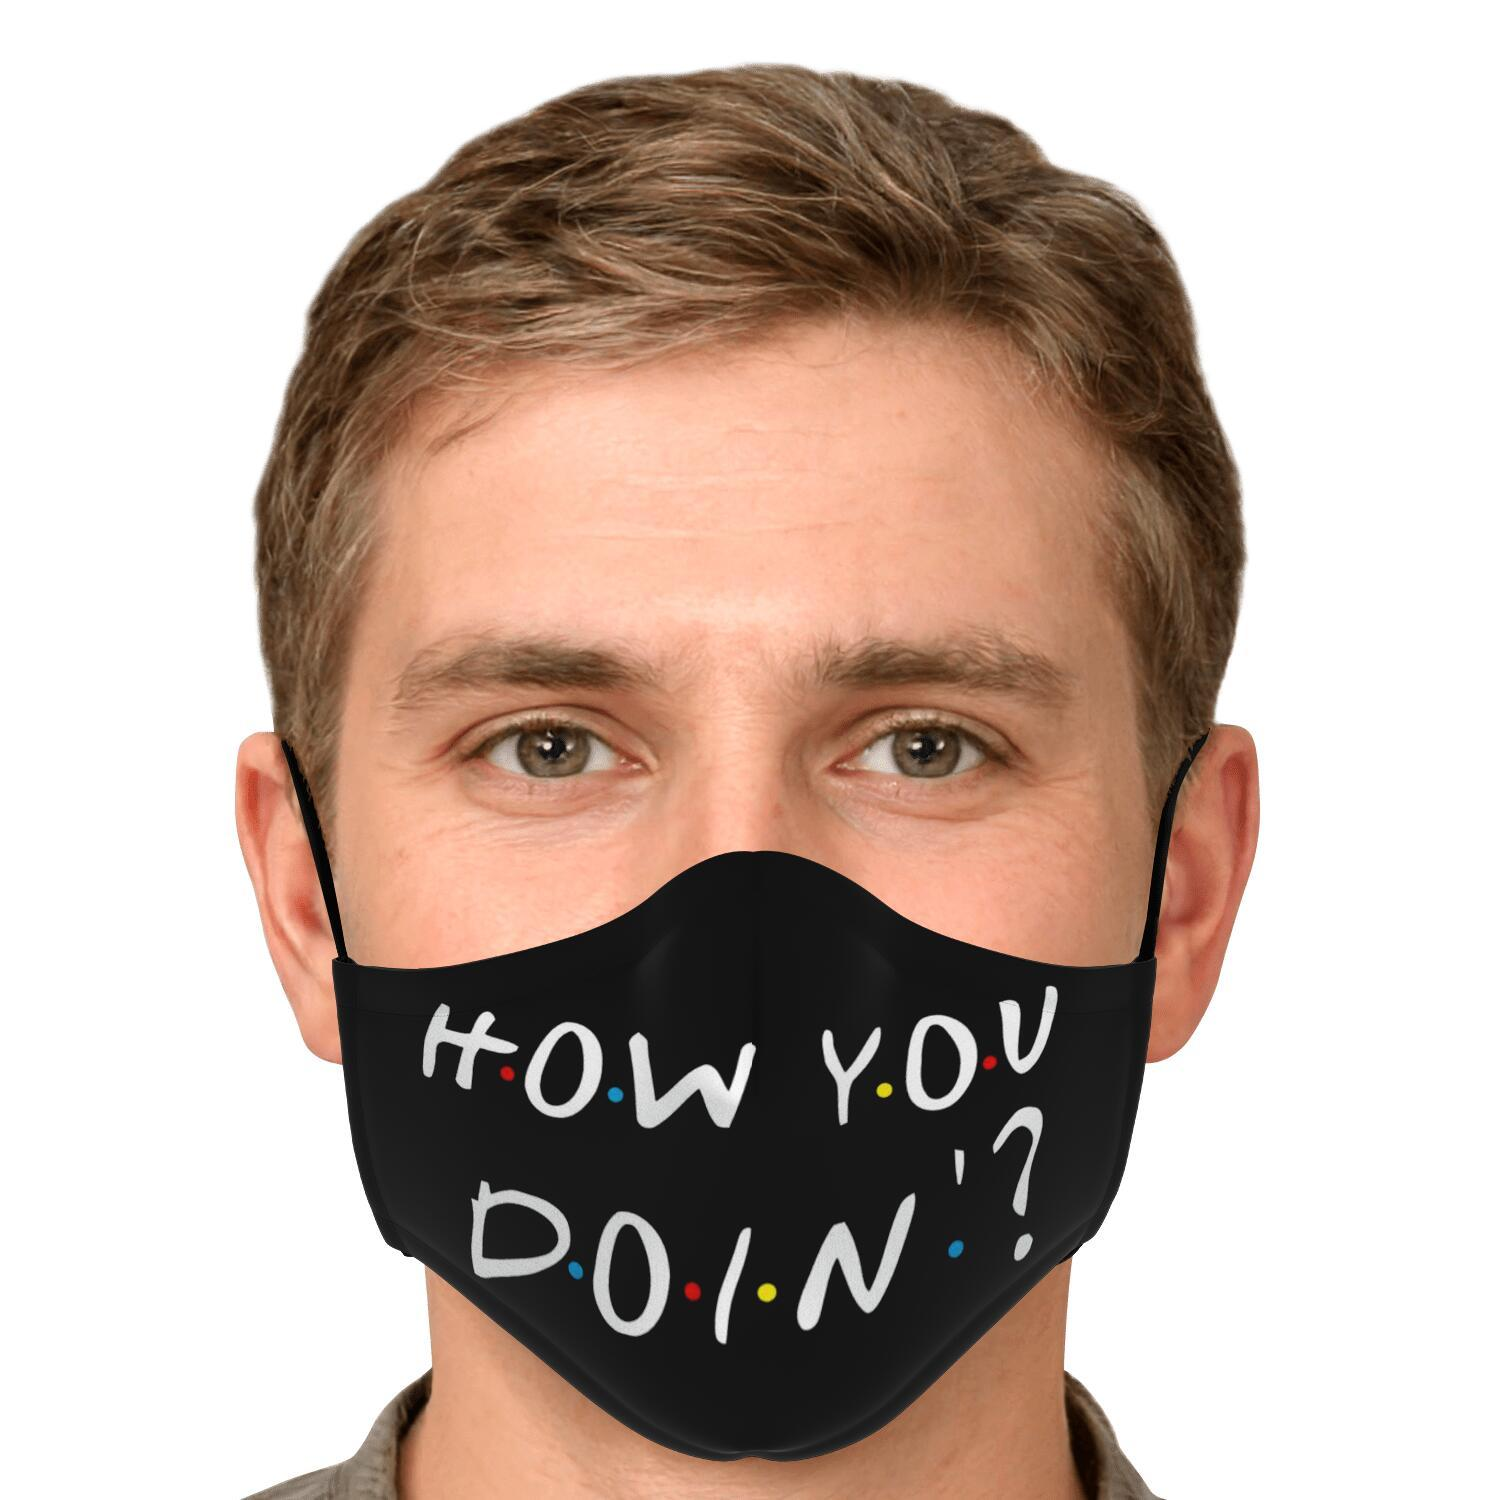 How You Doin'? Joey F.R.I.E.N.D.S Face Mask 4